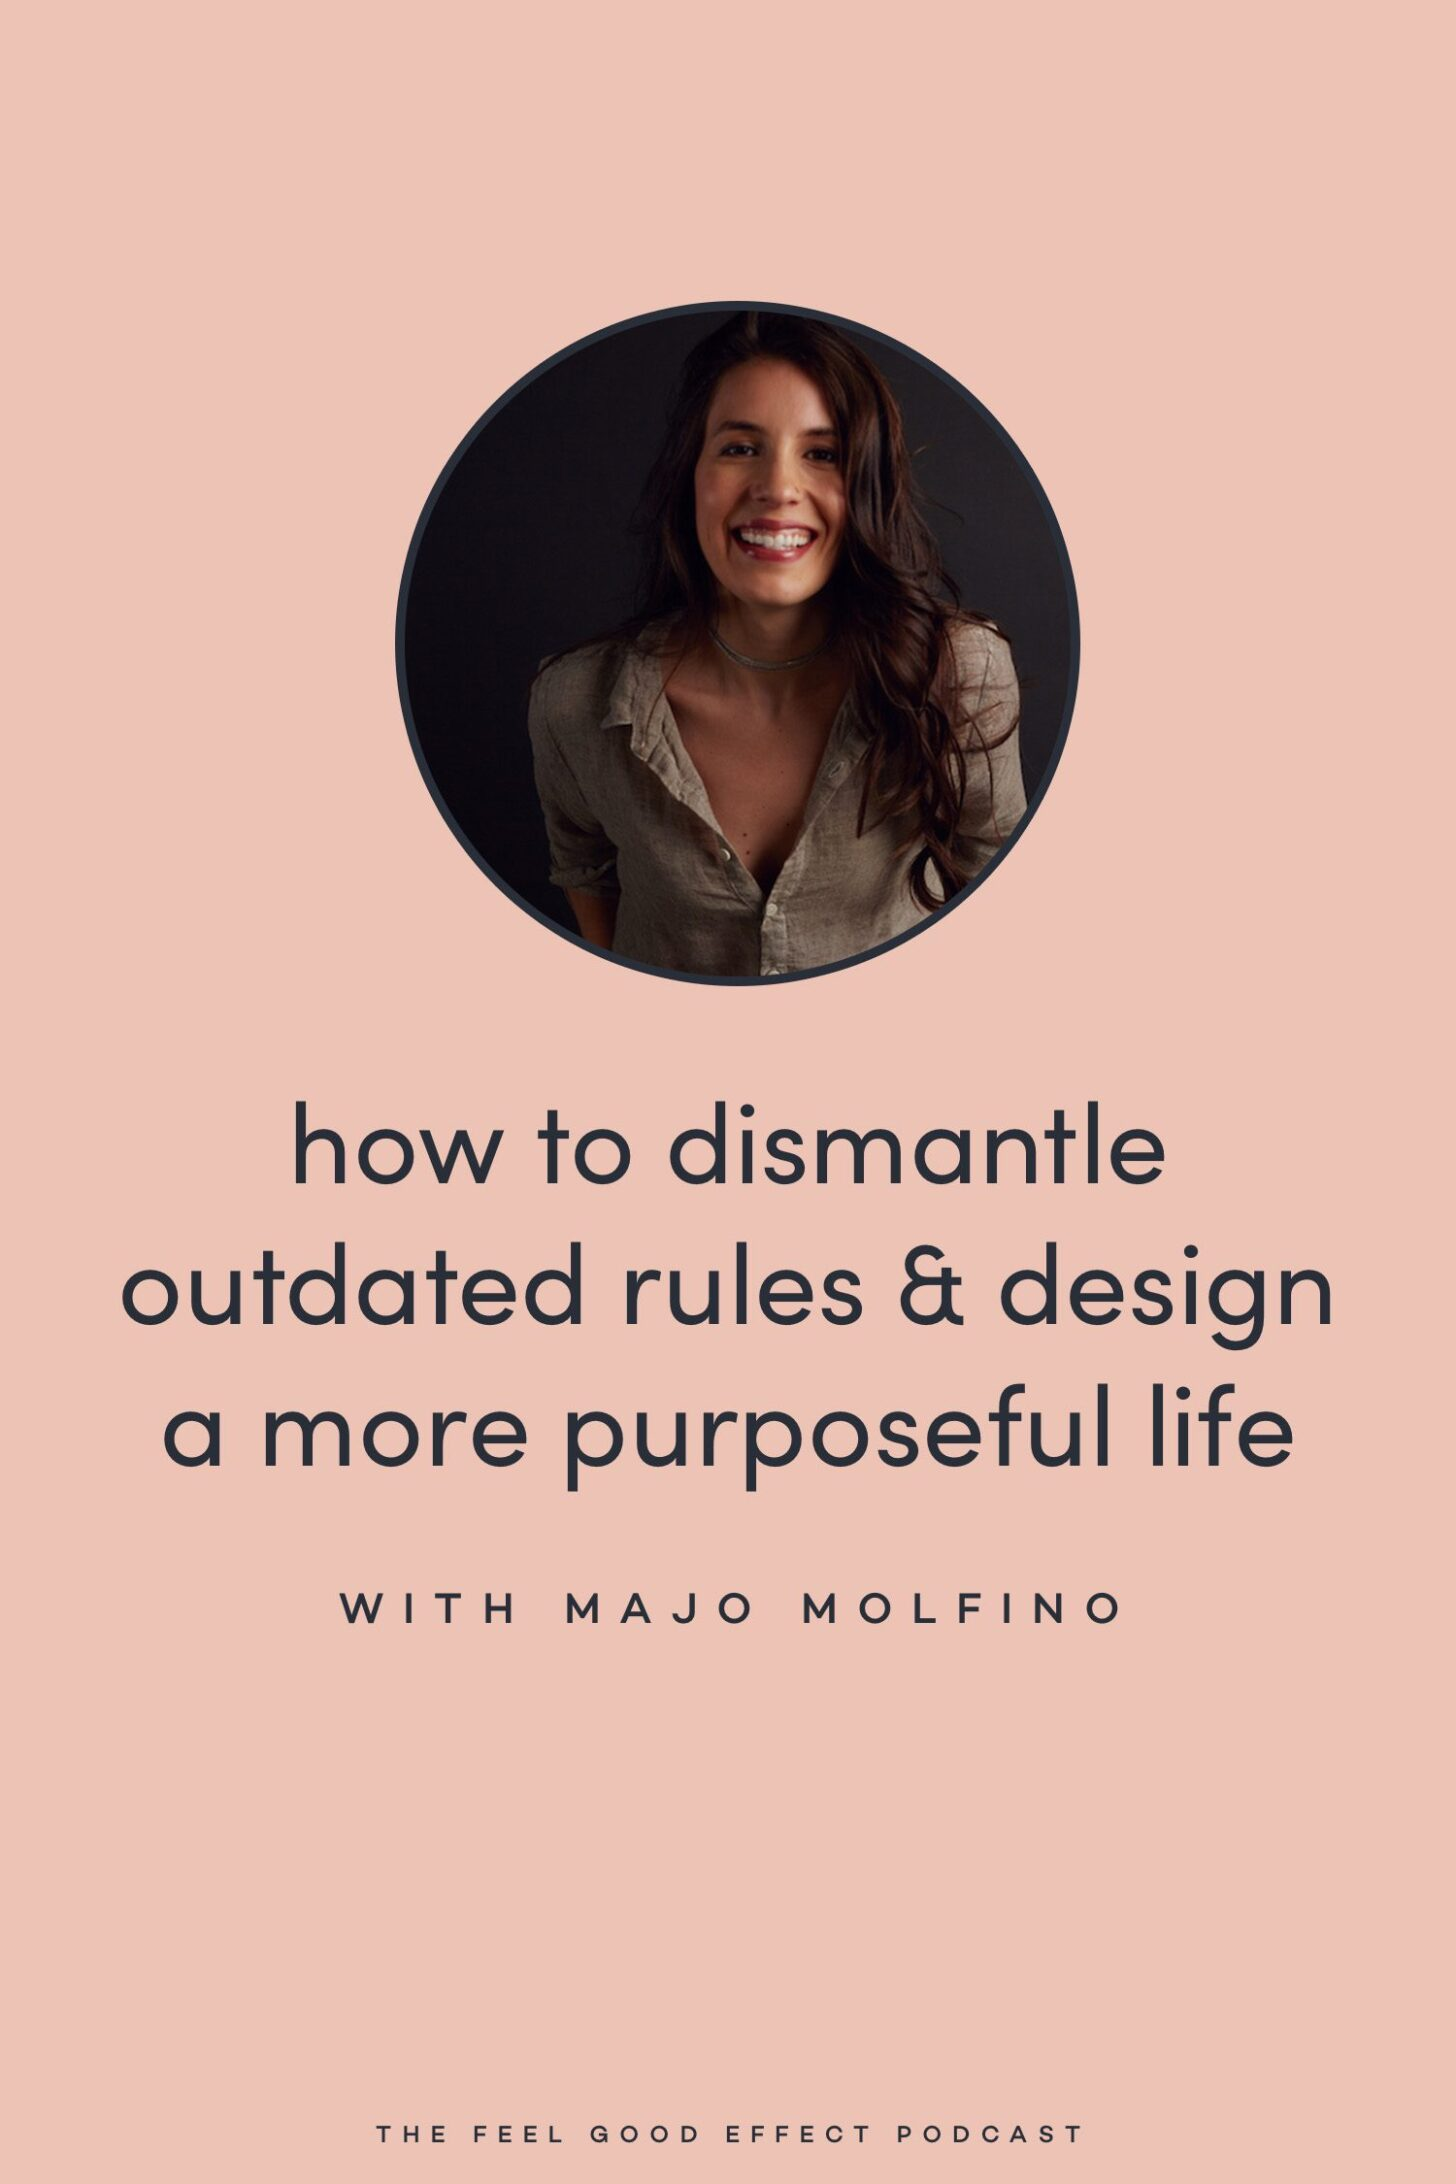 How to Dismantle Outdated Rules & Design a More Purposeful Life with Mojo Molfino on the Feel Good Effect Podcast #realfoodwholelife #feelgoodeffectpodcast #dismantle #purpose